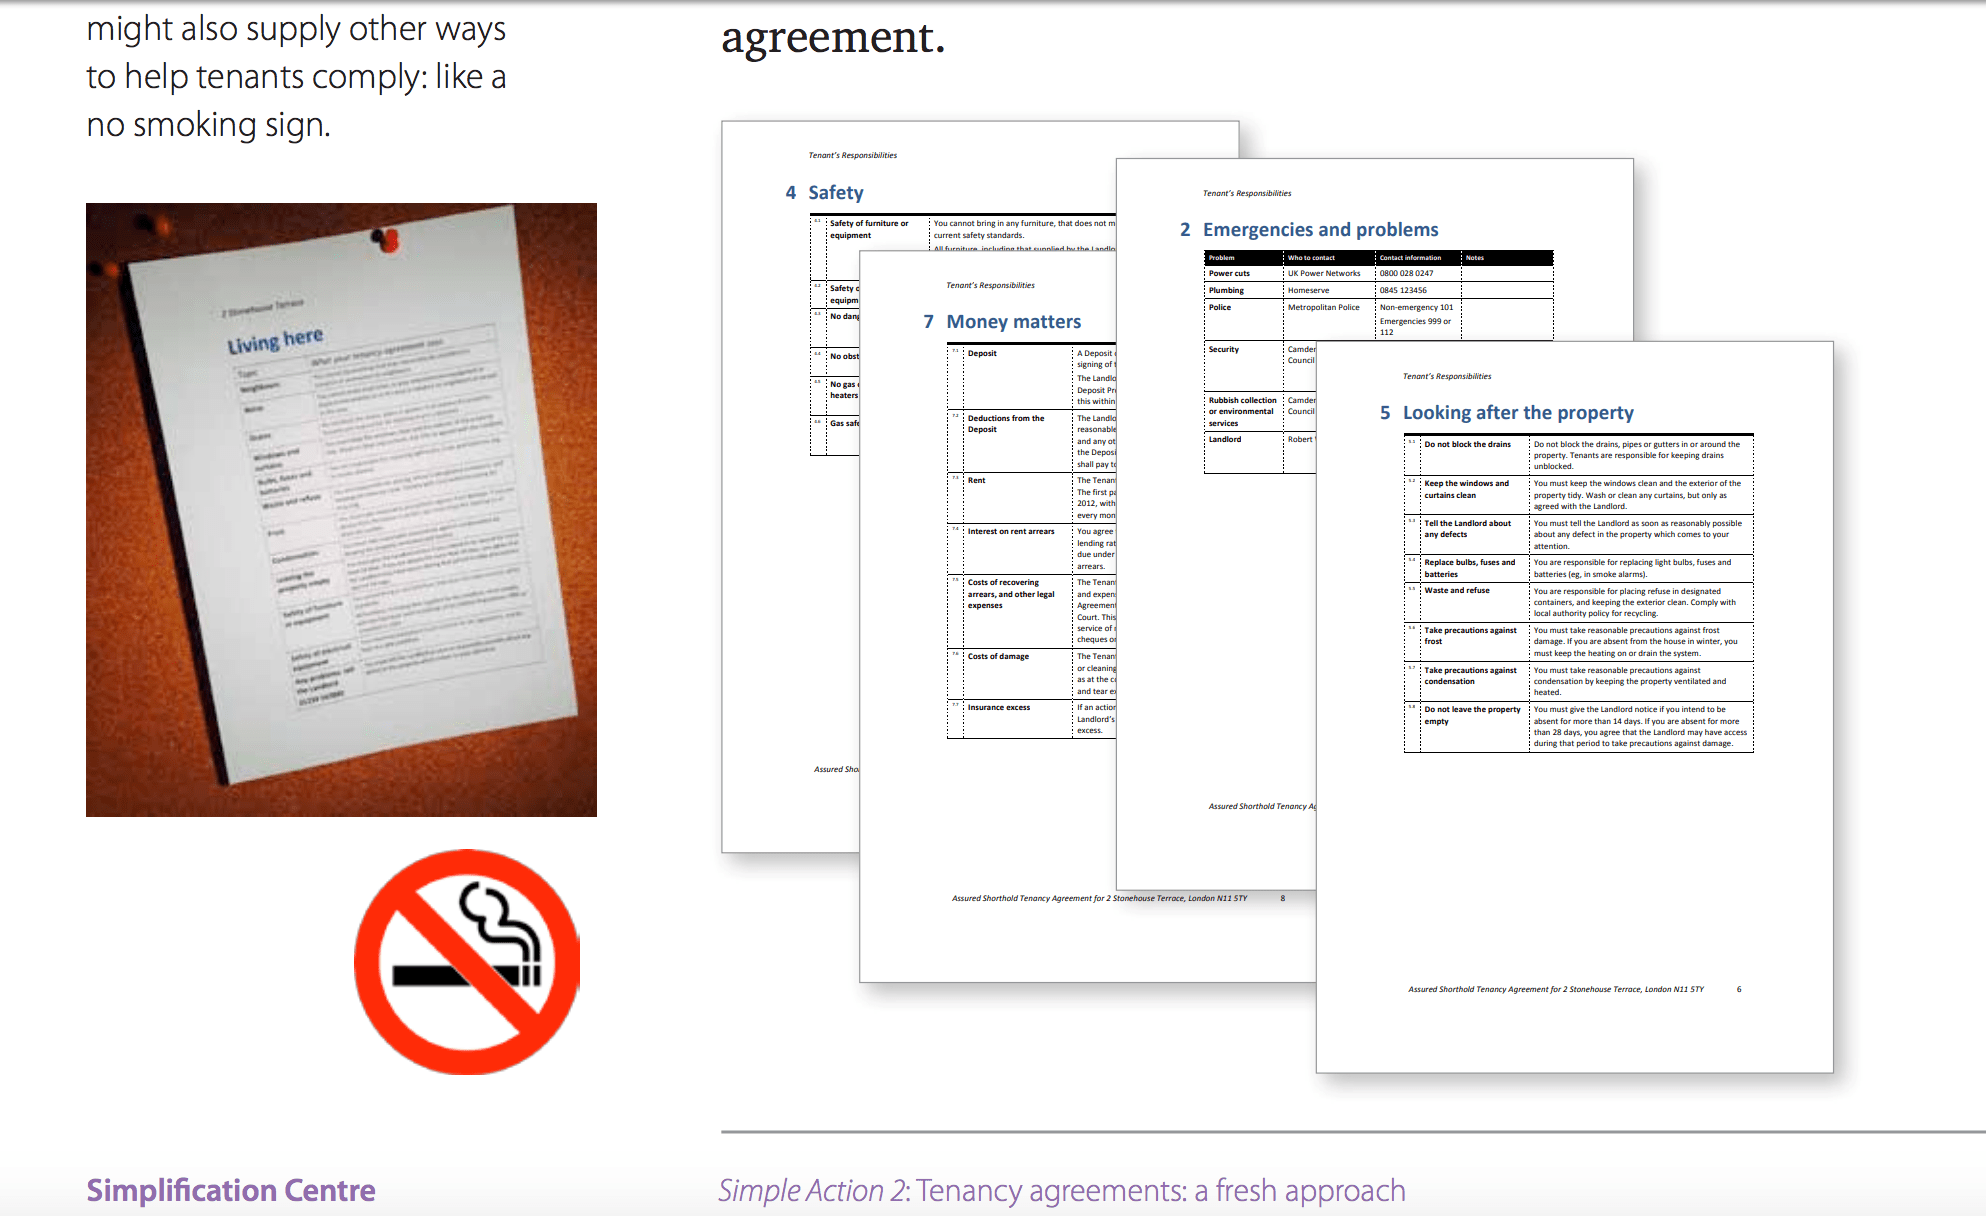 Redesigned Rental Agreement For Landlords Tenants From The